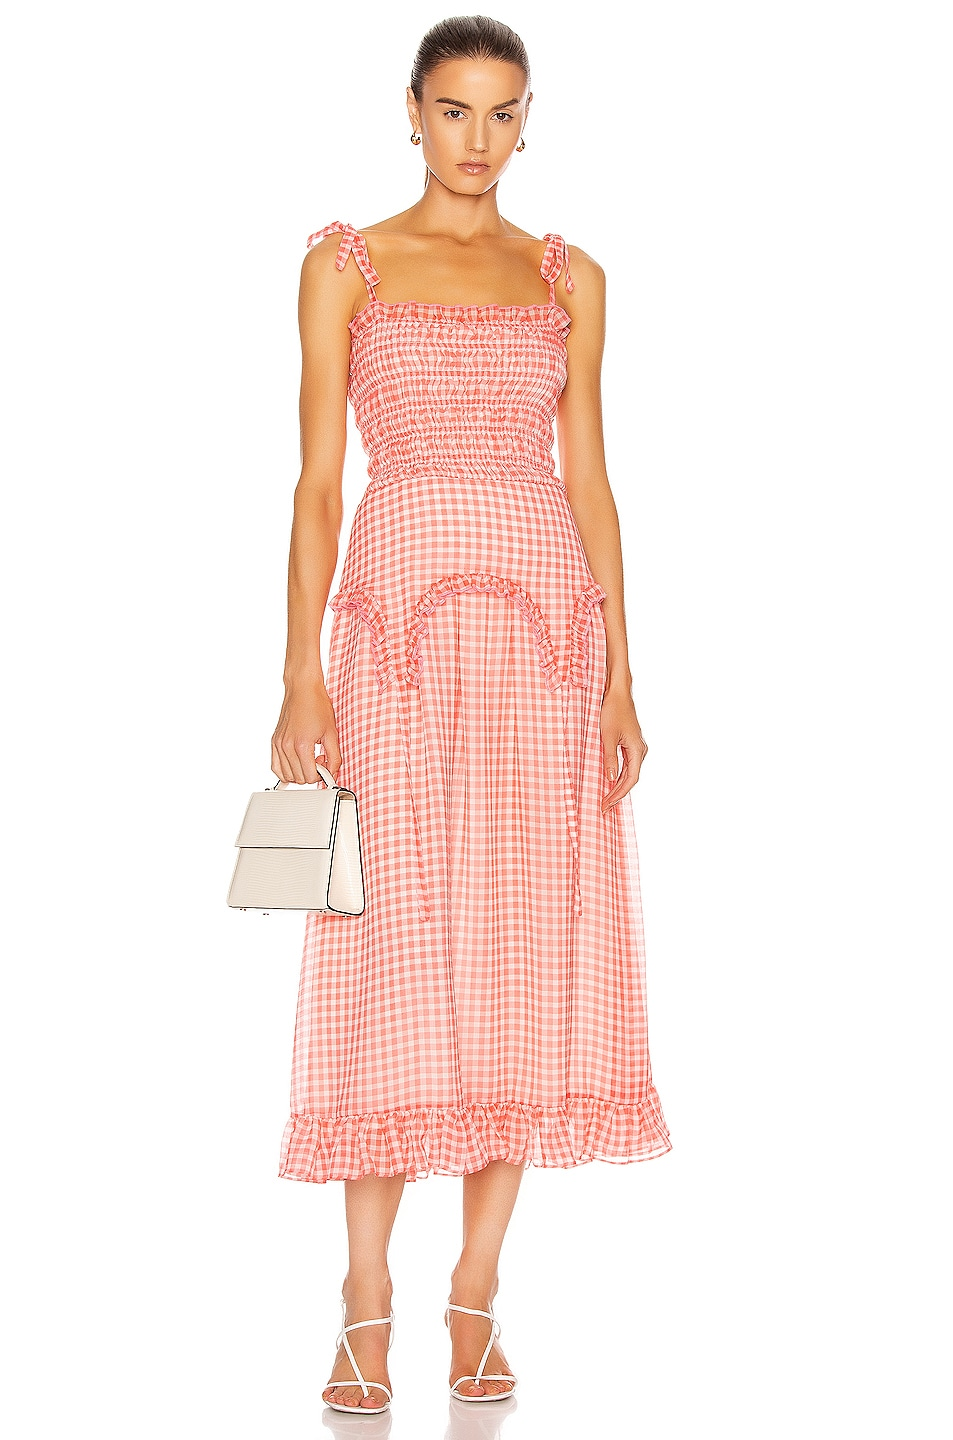 Image 1 of Sandy Liang Rainer Dress in Orange Gingham